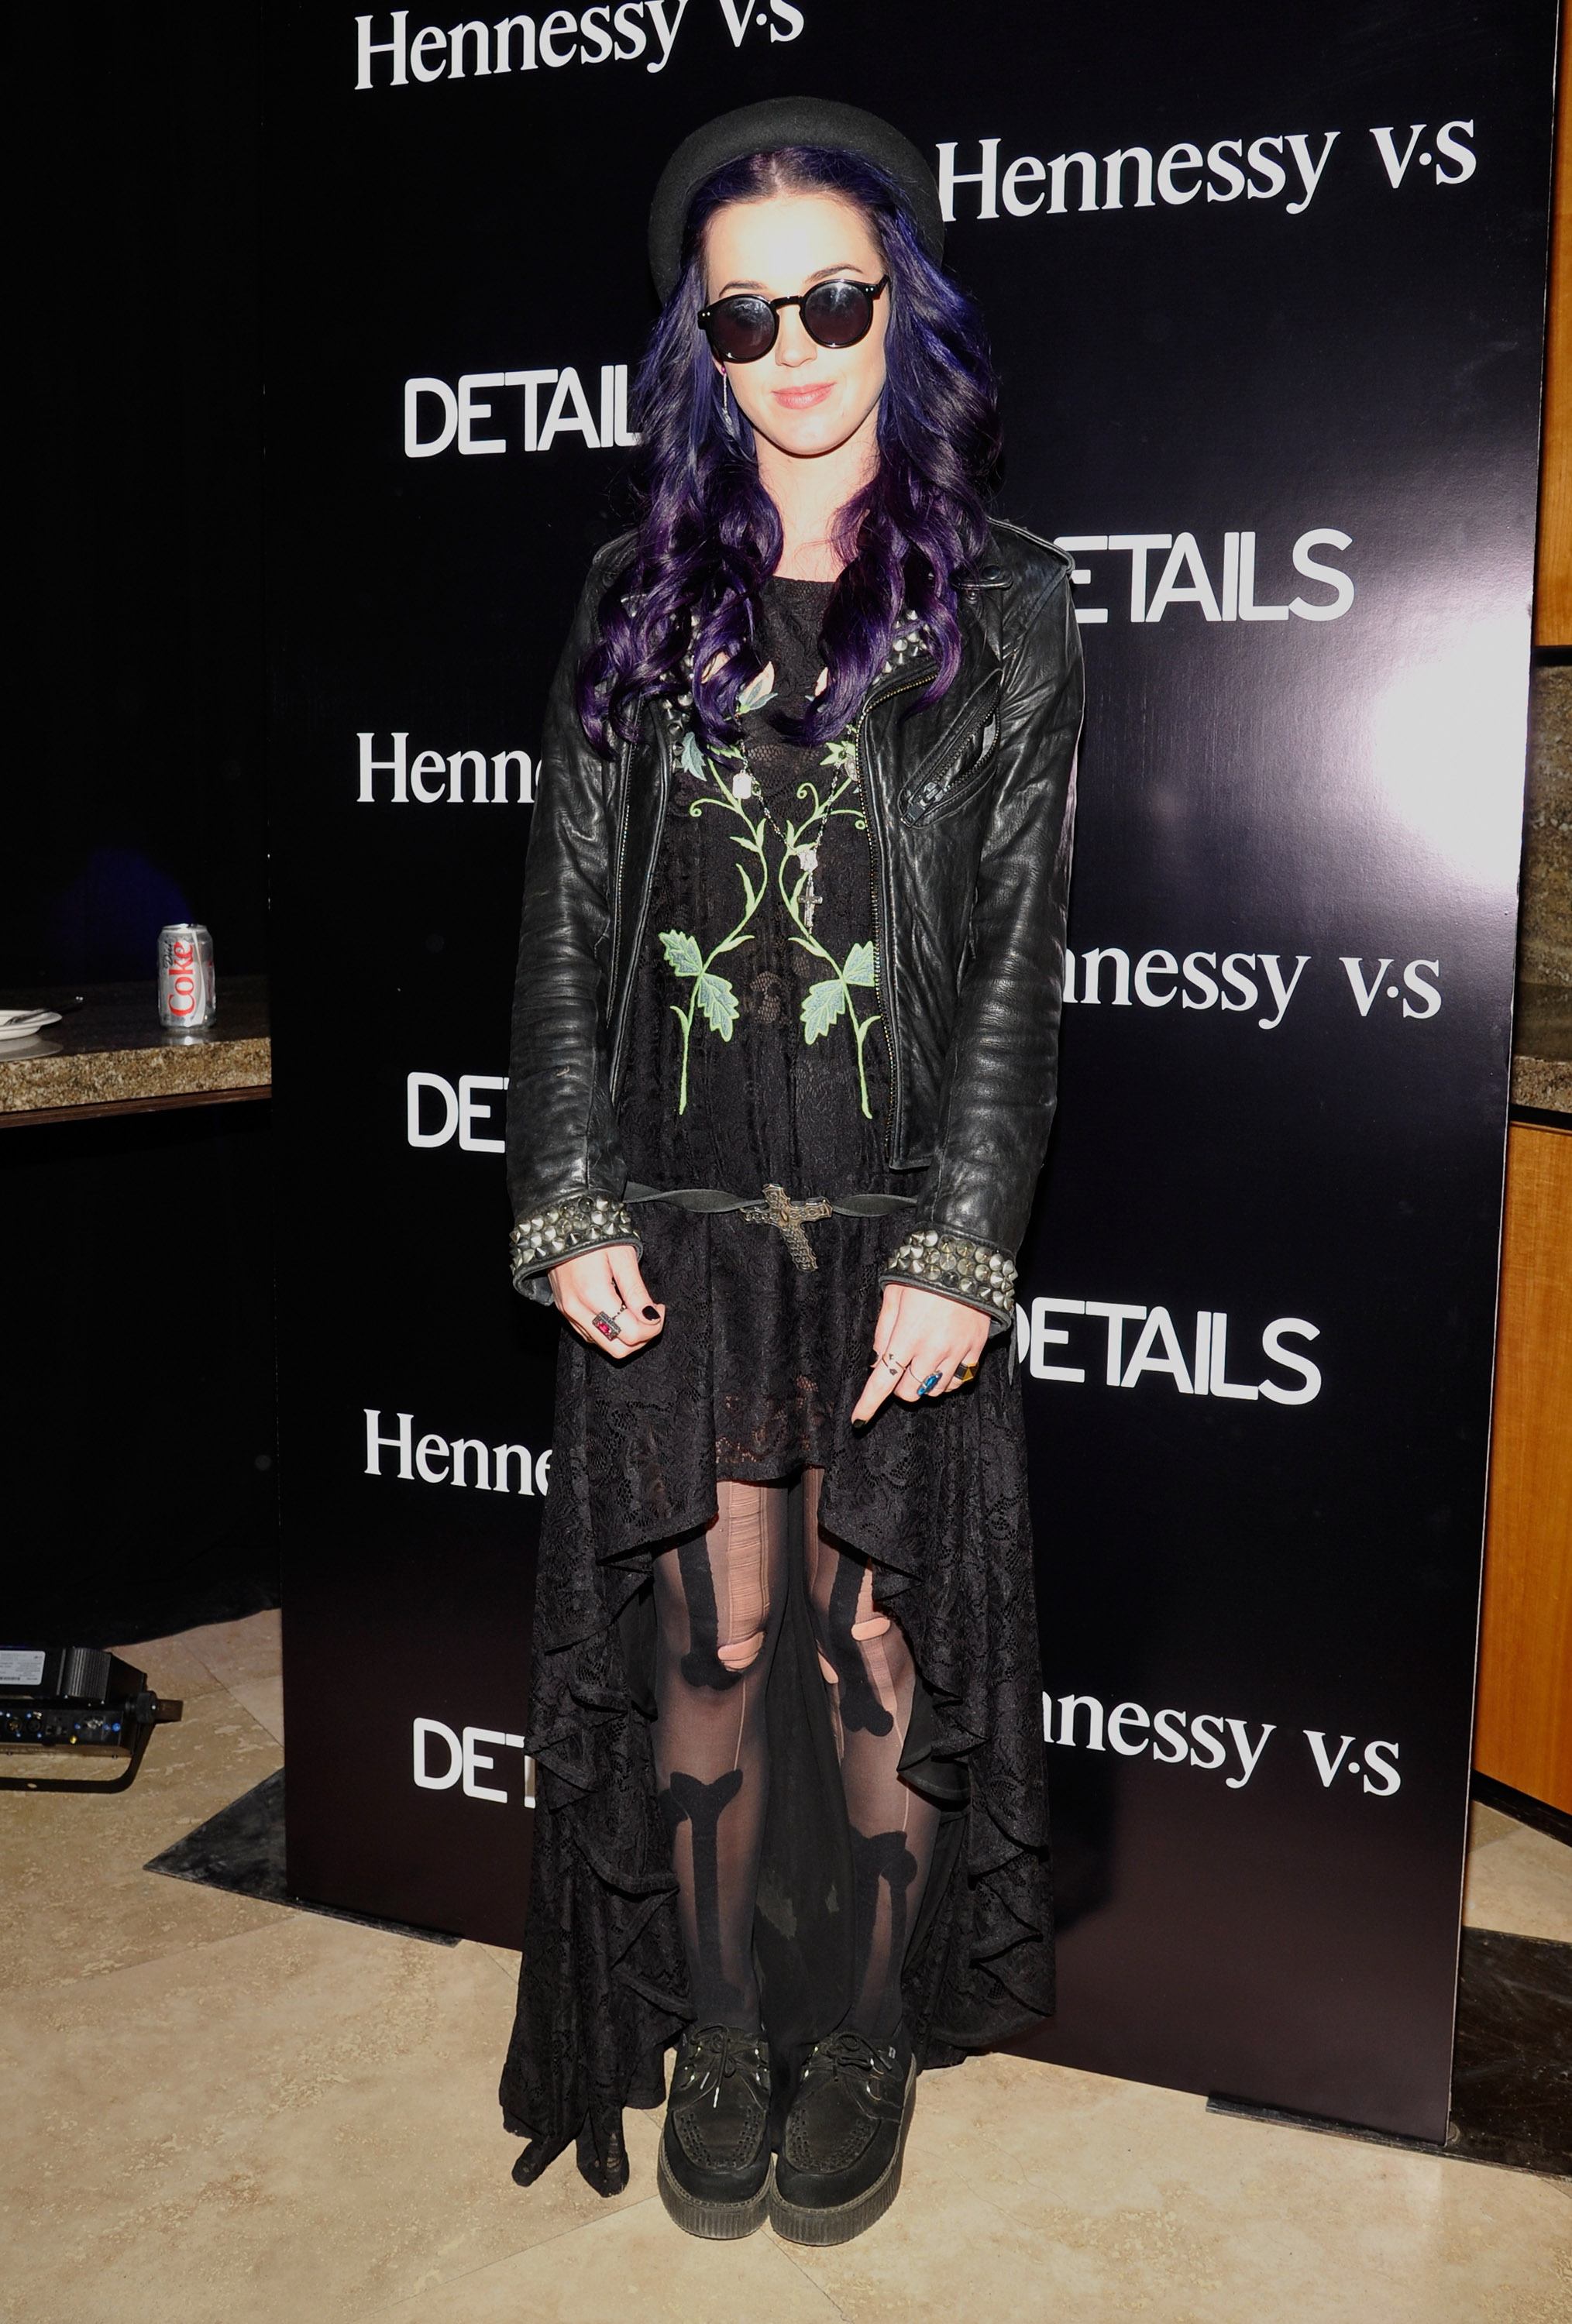 Katy Perry went from the festival to the Details and Hennessy afterparty on Friday.